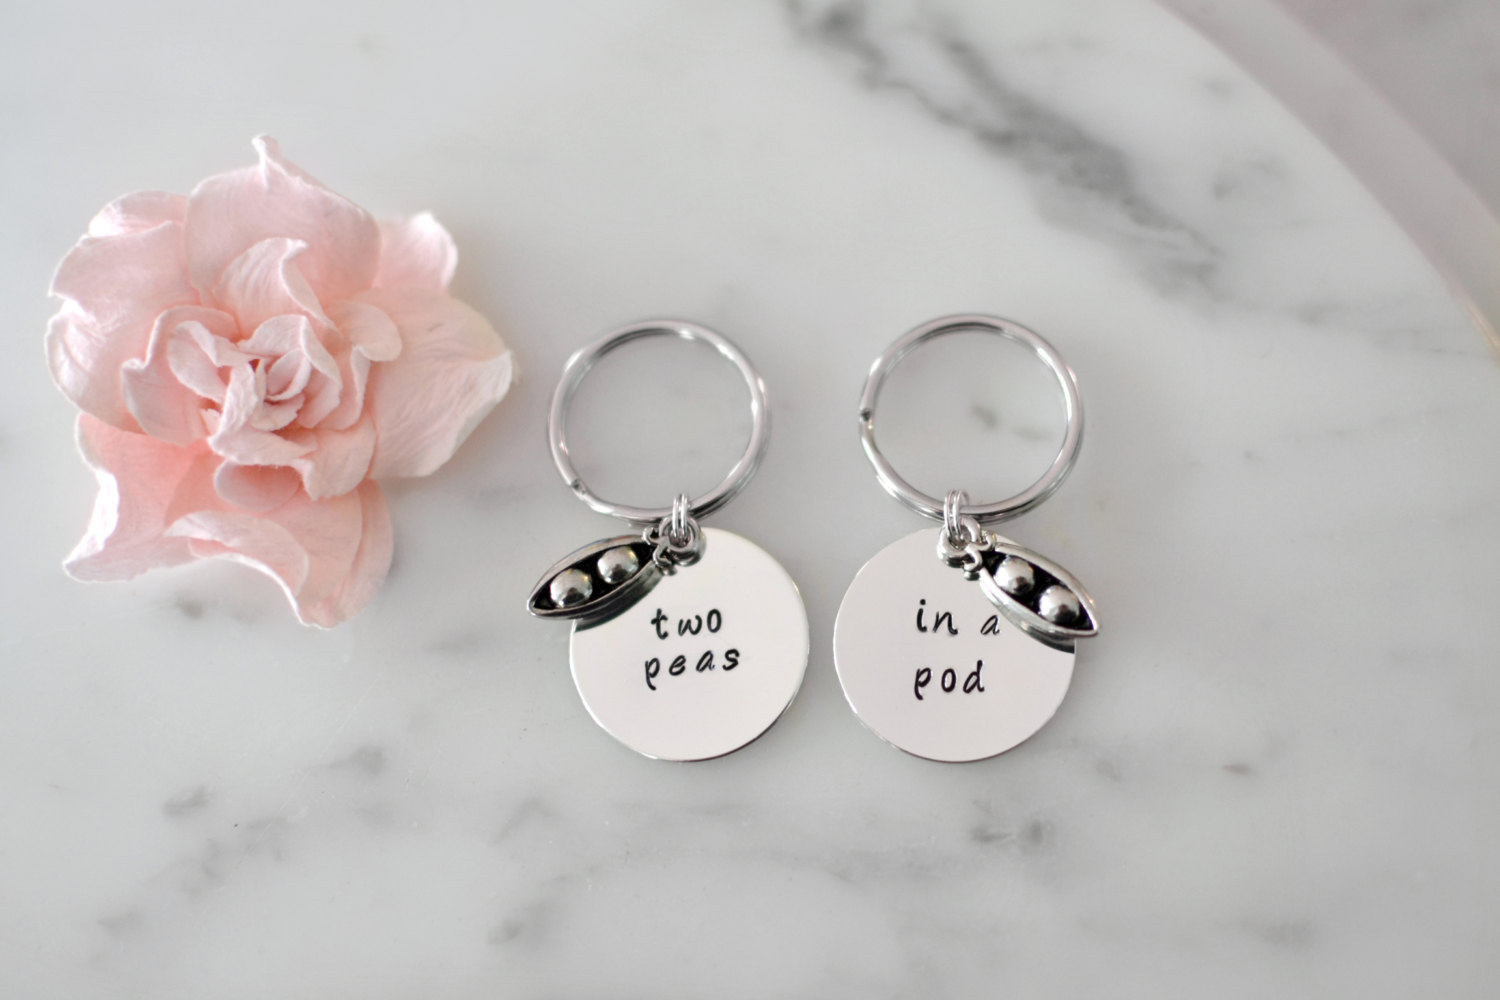 Two Peas in a Pod Keychain Set